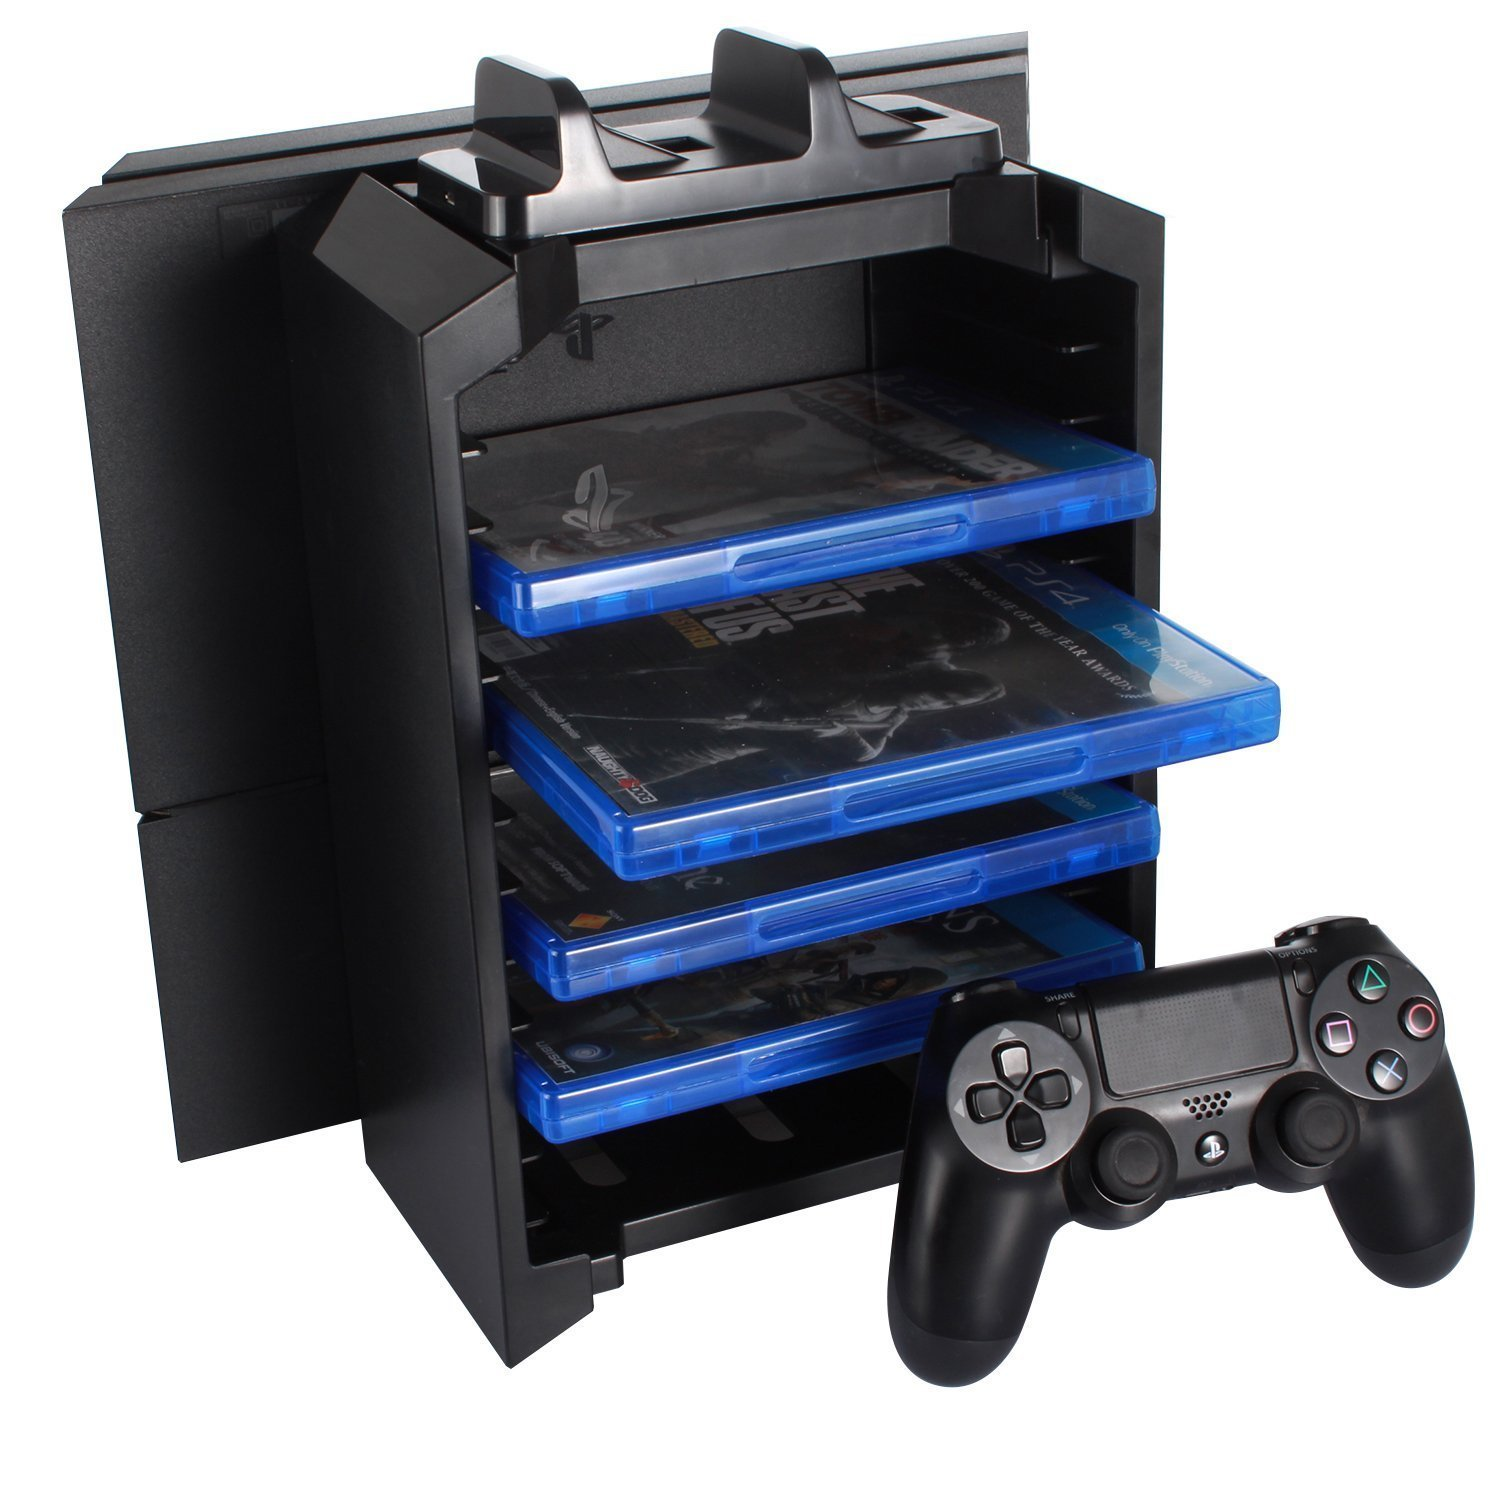 MiBoo PS4 storage Tower - Playstation 4 Console Vertical Stand, DualShock Controller Charging Dock Station and 12 PS4 Game Blue-ray disc storage Holder by Miboo: Amazon.es: Videojuegos